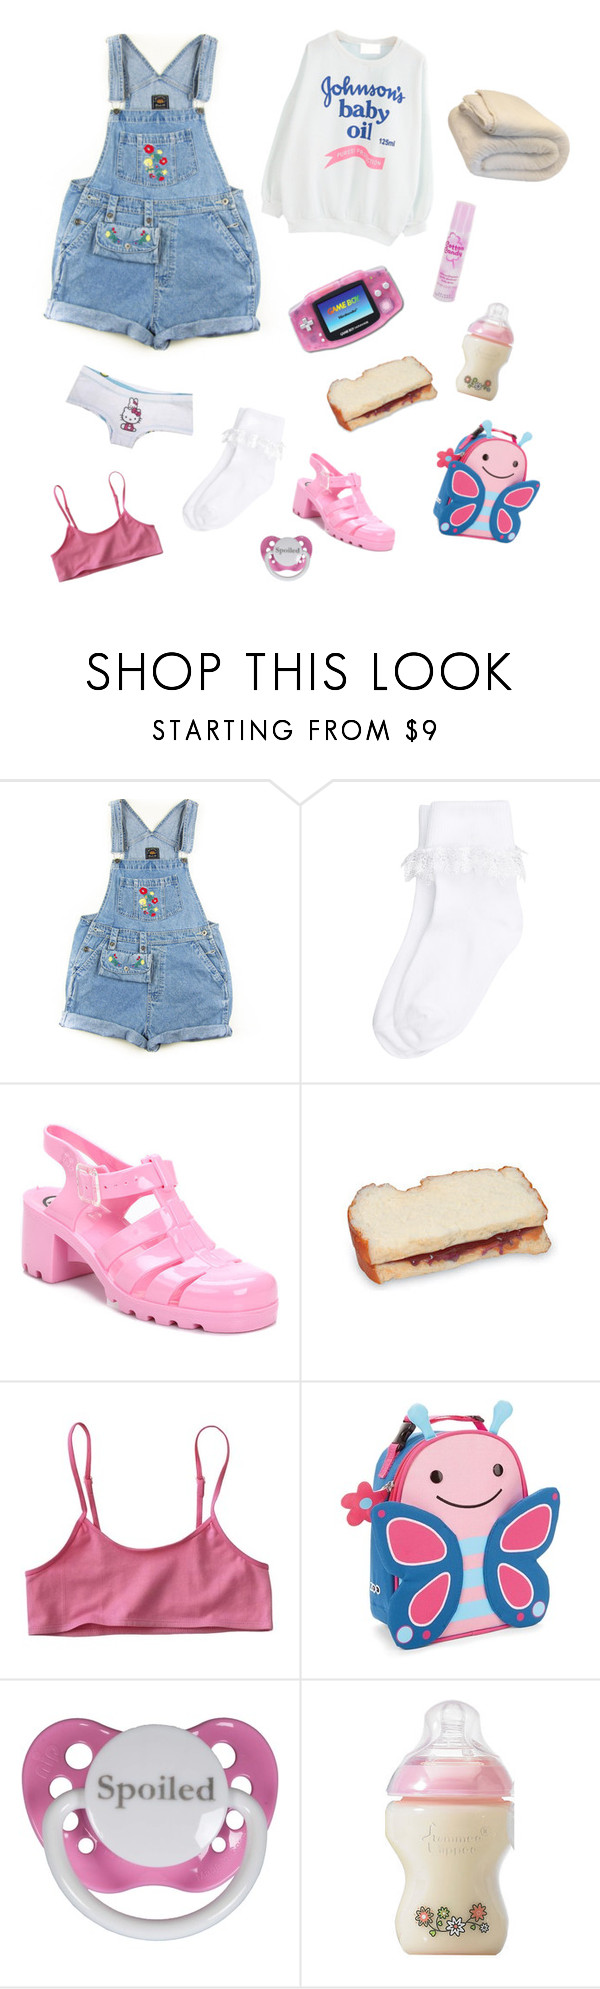 """""""Baby Oil"""" by dead-head-dolly ❤ liked on Polyvore featuring Monsoon, JuJu, Nintendo, Skip Hop and Cotton Candy"""